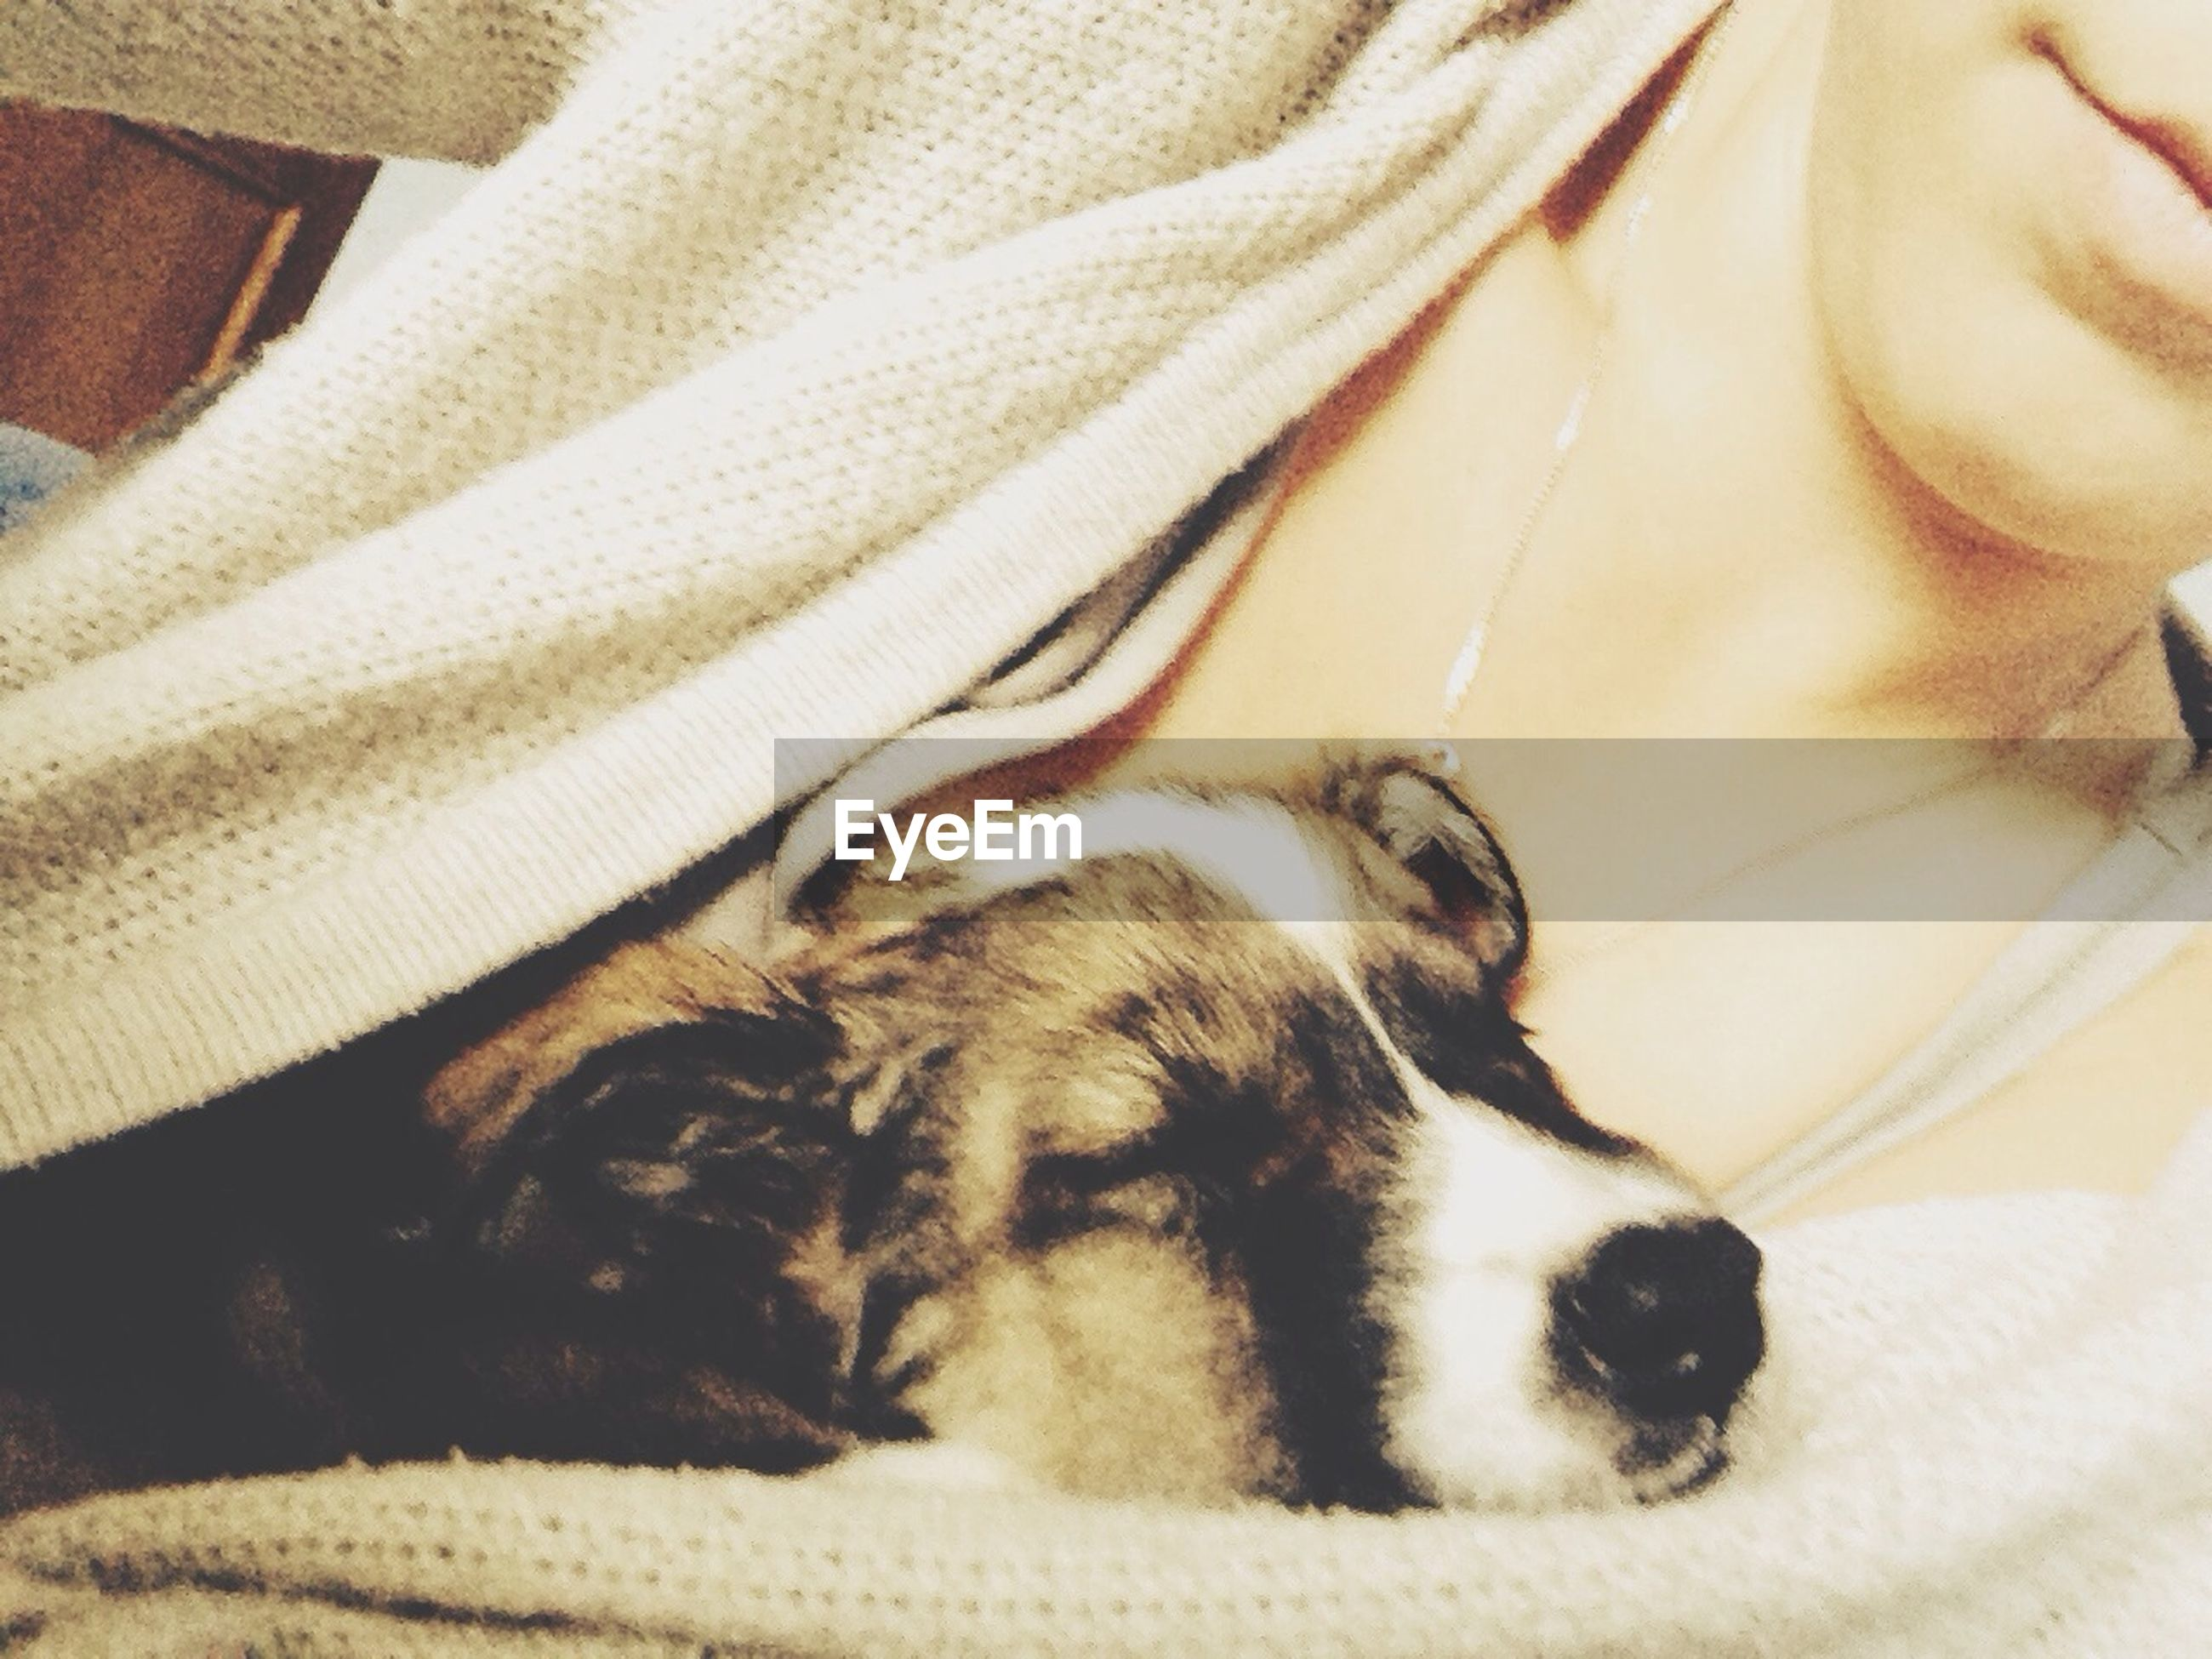 indoors, pets, domestic animals, animal themes, one animal, mammal, bed, relaxation, sleeping, close-up, dog, resting, home interior, lying down, domestic cat, blanket, cat, one person, high angle view, part of